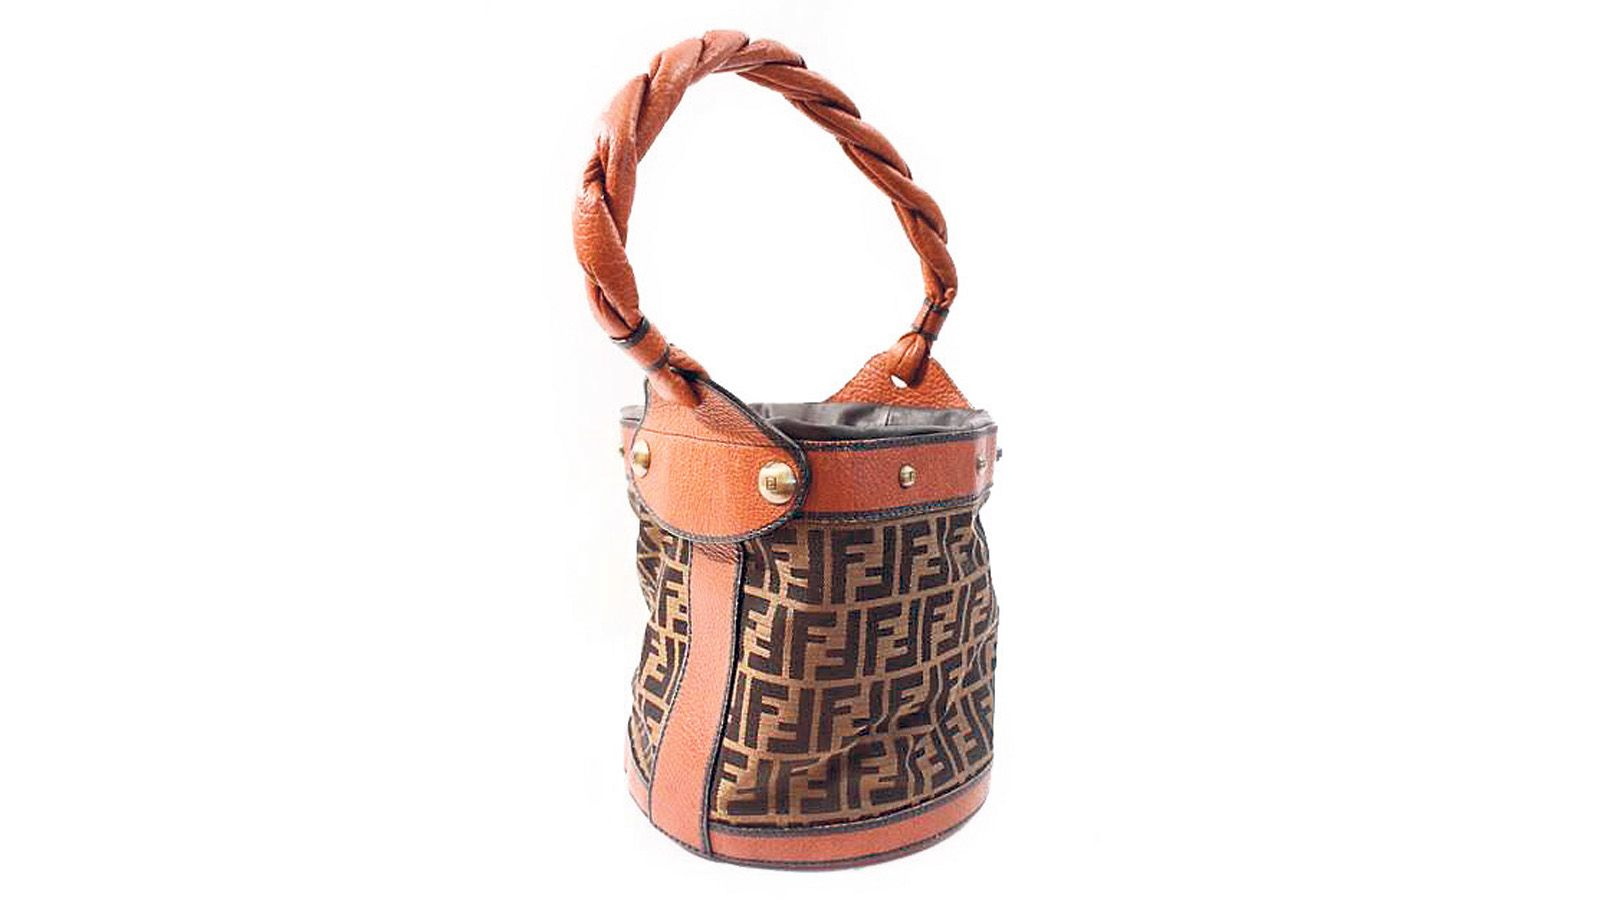 49ffb8411405 Rare Fendi Vintage Bucket bag, from Rice and Beans Vintage.